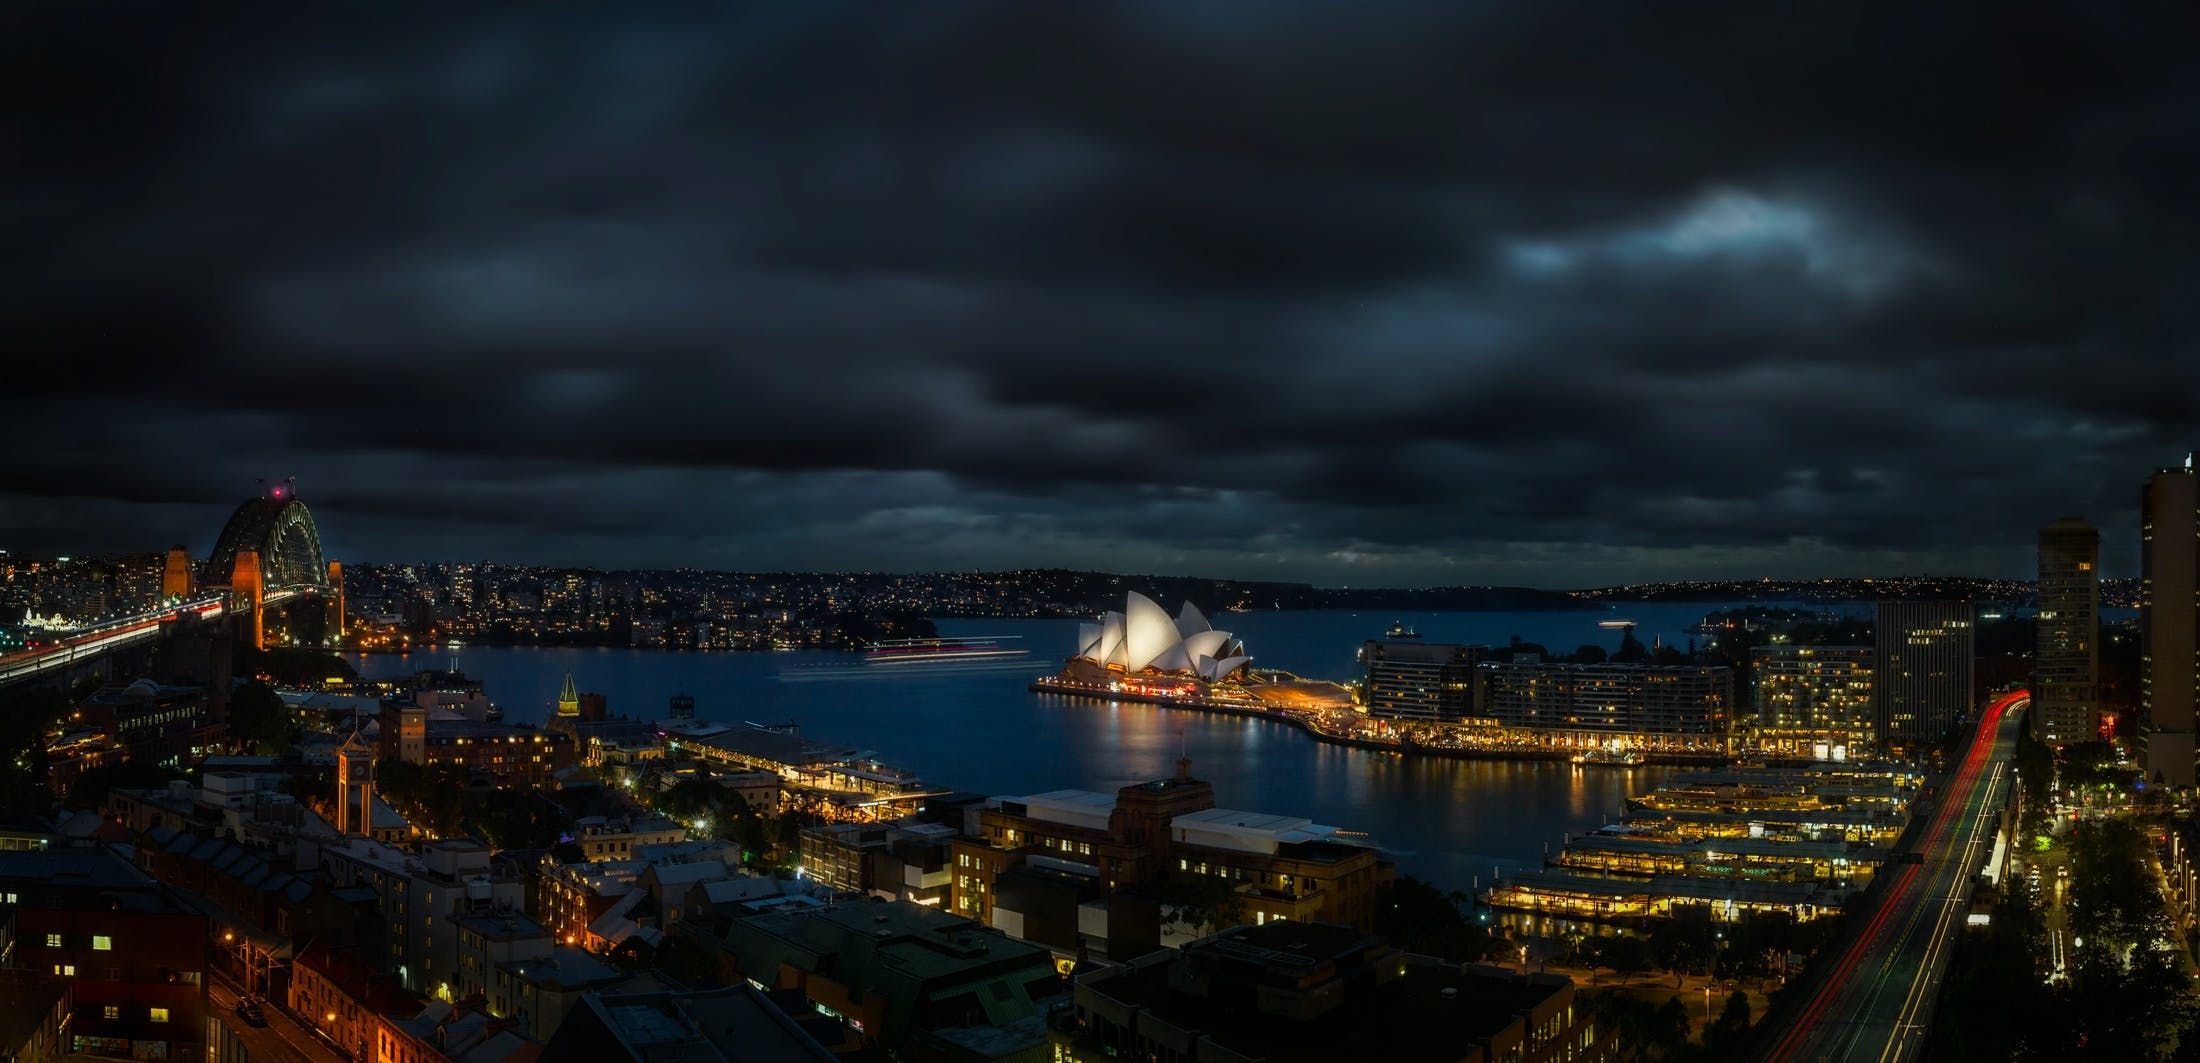 Top View Photography of Sydney Opera House, Australia